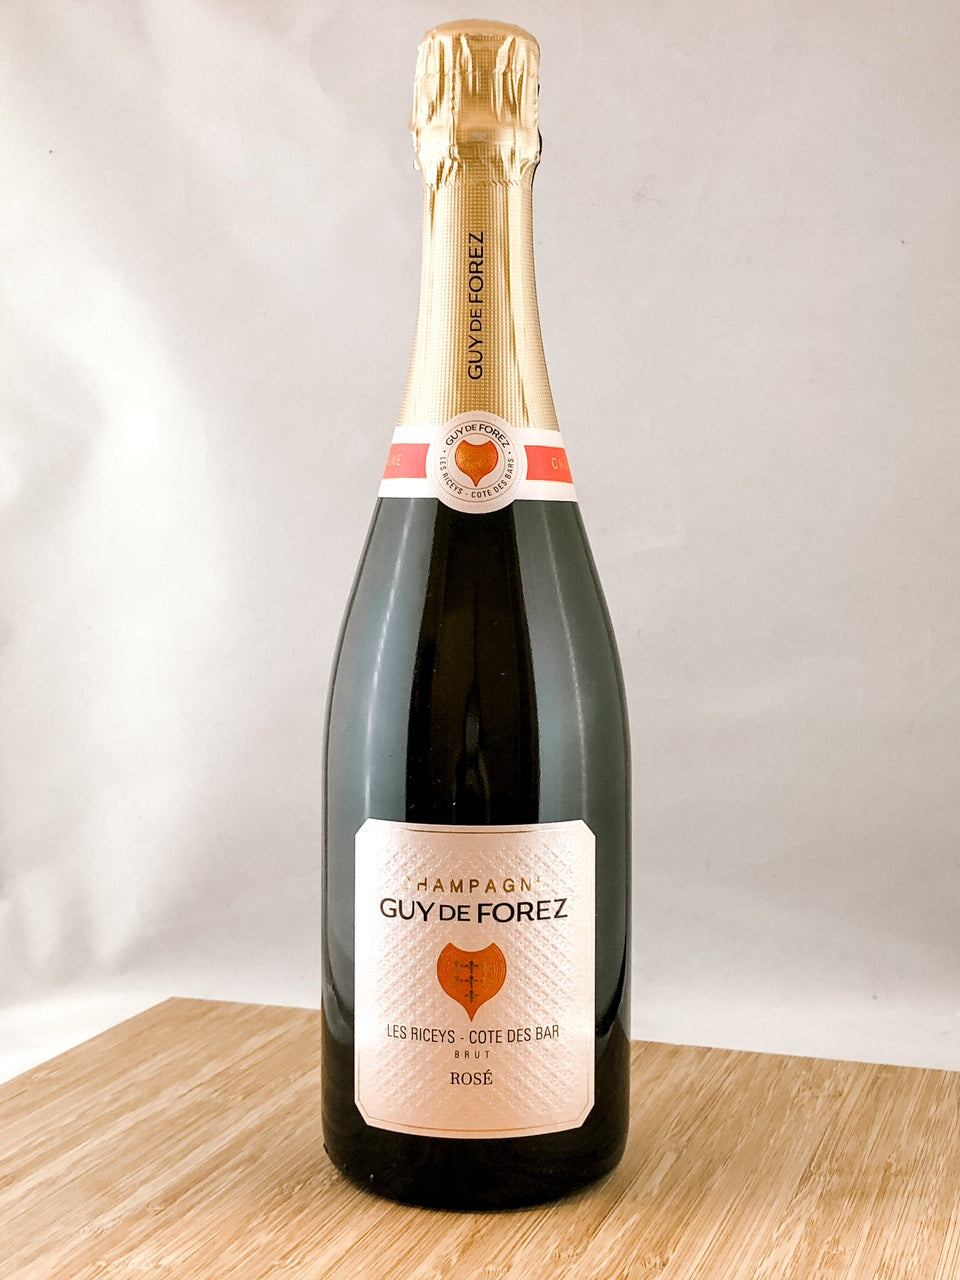 guy de forex Champagne, part of our champagne delivery and great for unique gift ideas.